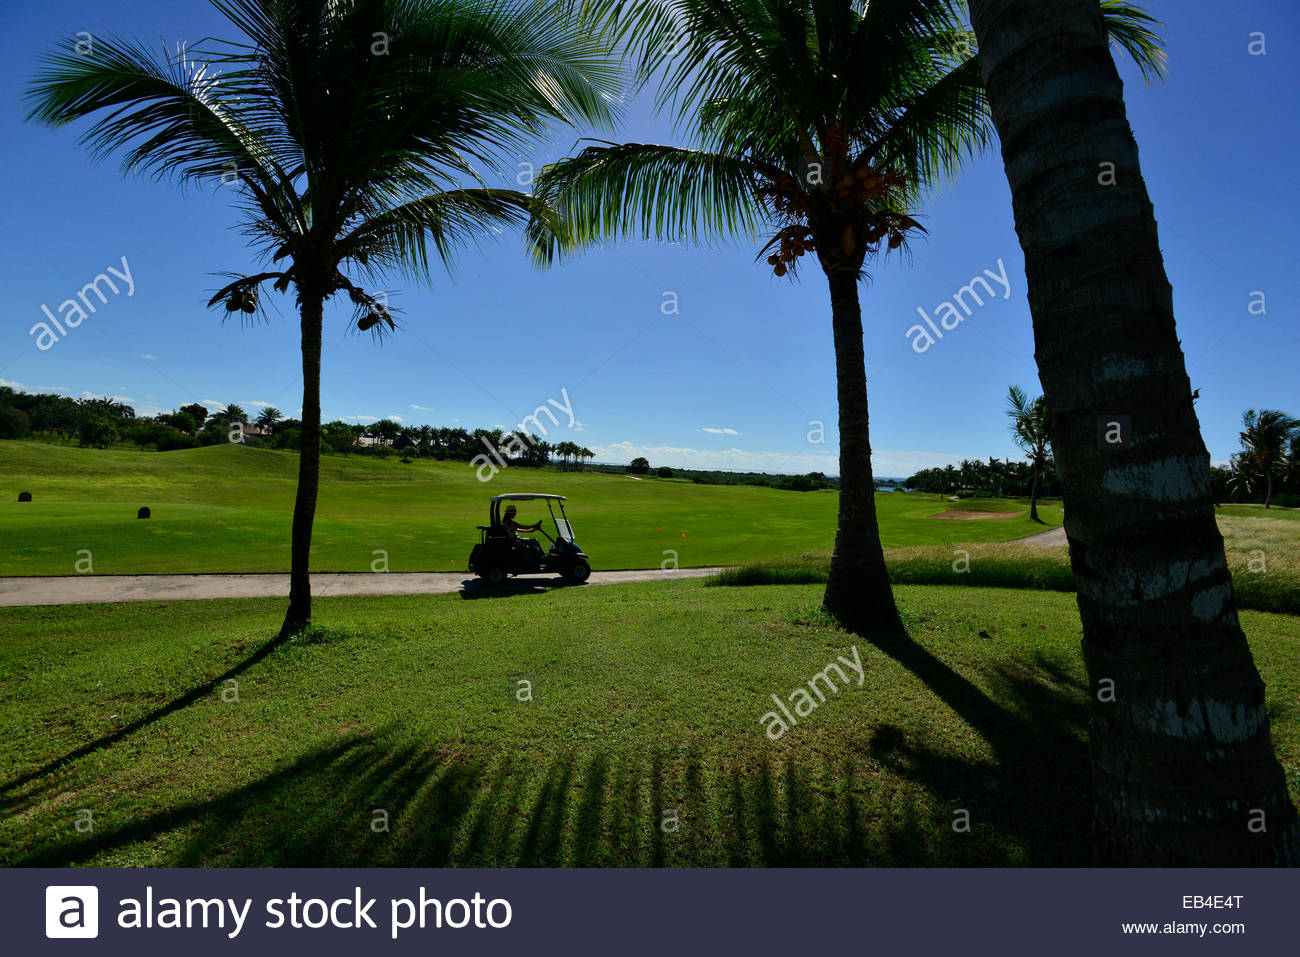 A person drives a golf cart at the golf course at the Romana Country Club. - Stock Image